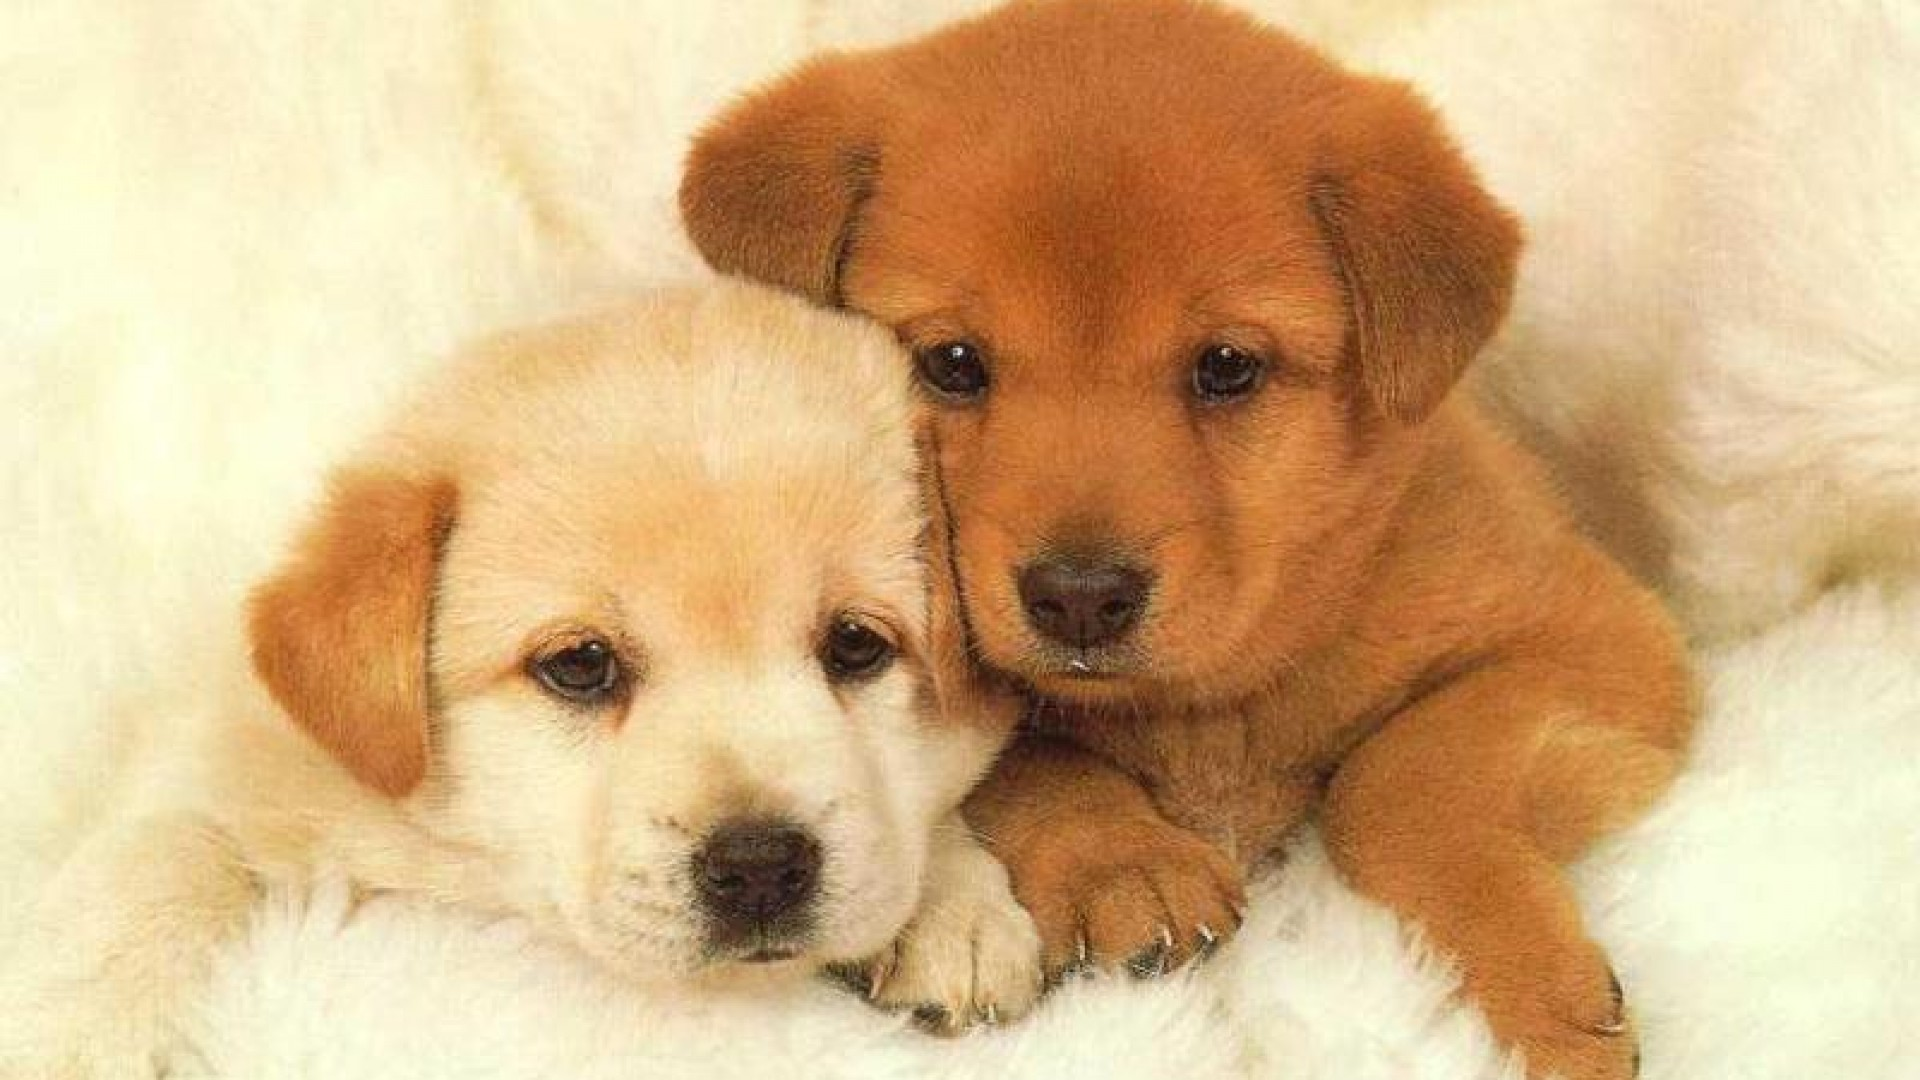 Puppy wallpaper | 1920x1080 | #46573